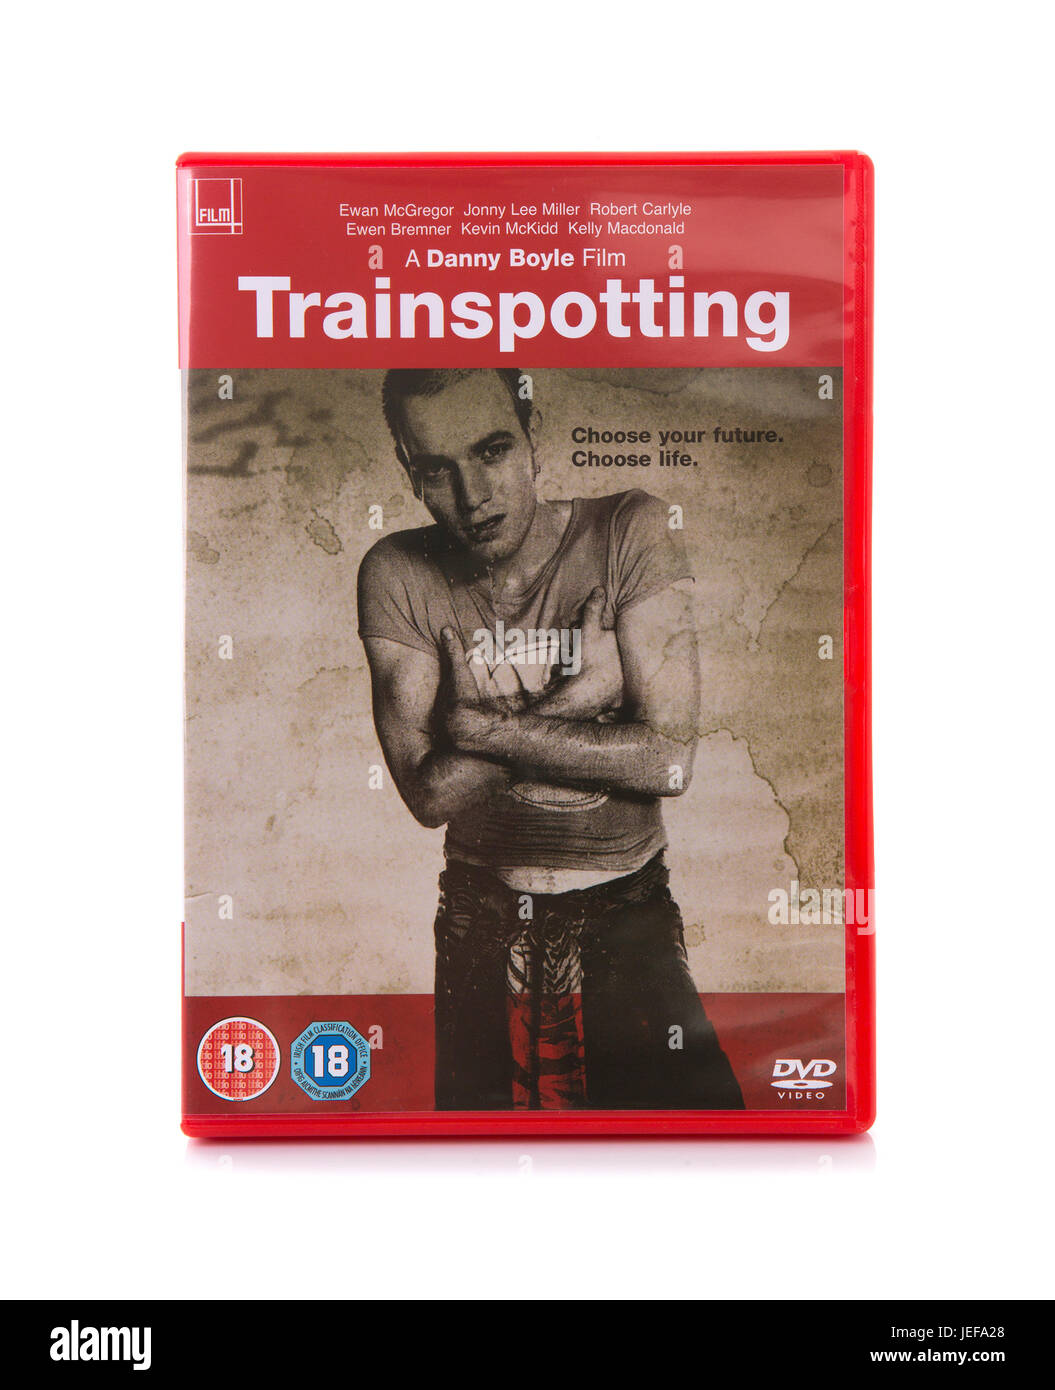 SWINDON, UK - JUNE 24, 2017: Trainspotting DVD by Danny Boyle, cult film from 1996 - Stock Image